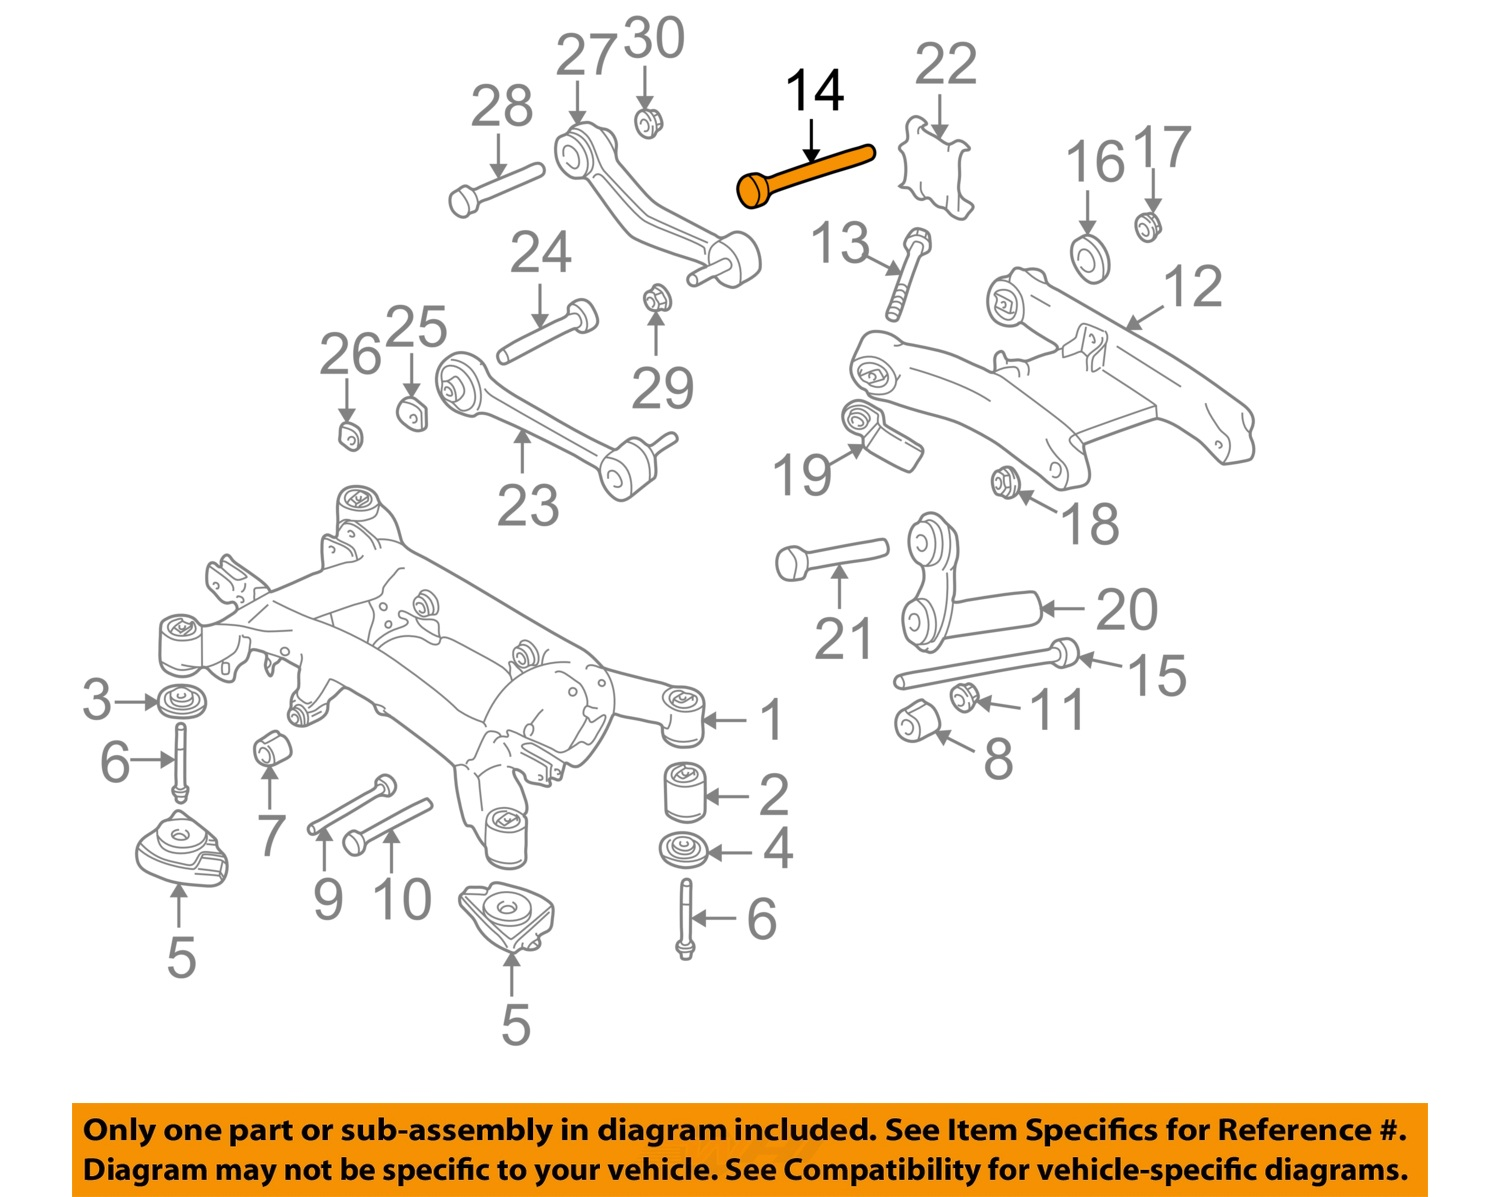 bmw oem 97-03 540i rear suspension-lower control arm bolt ... jeep grand cherokee rear suspension diagram #3